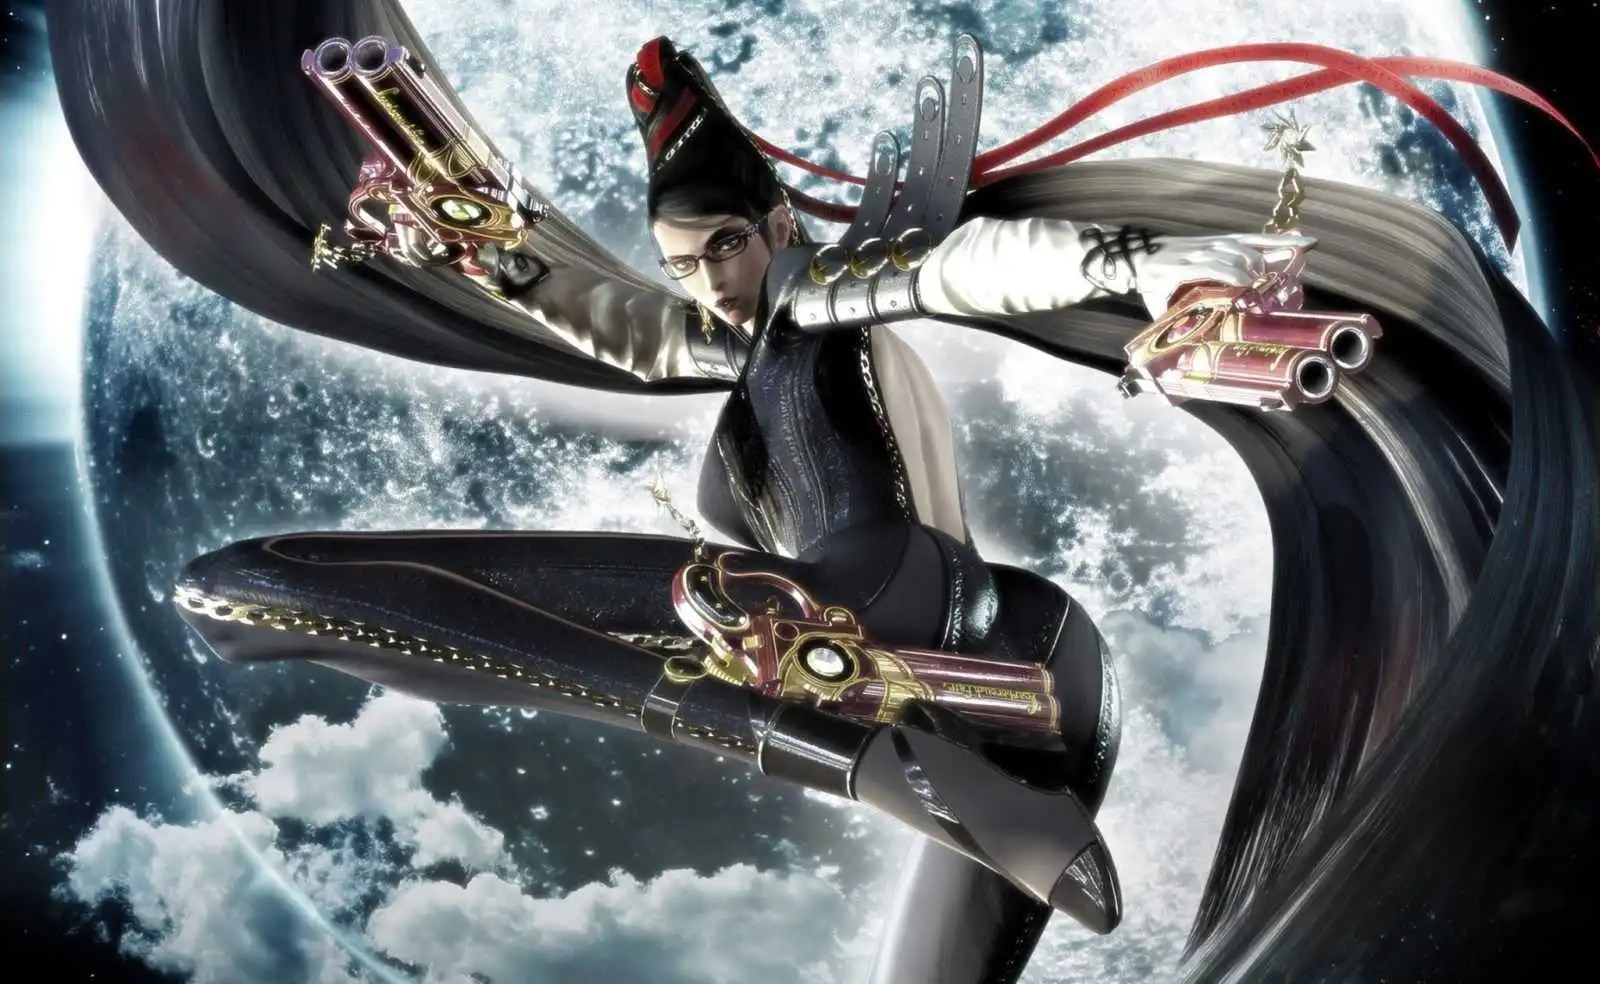 https://i1.wp.com/gametimers.it/wp-content/uploads/2017/05/Bayonetta.jpg